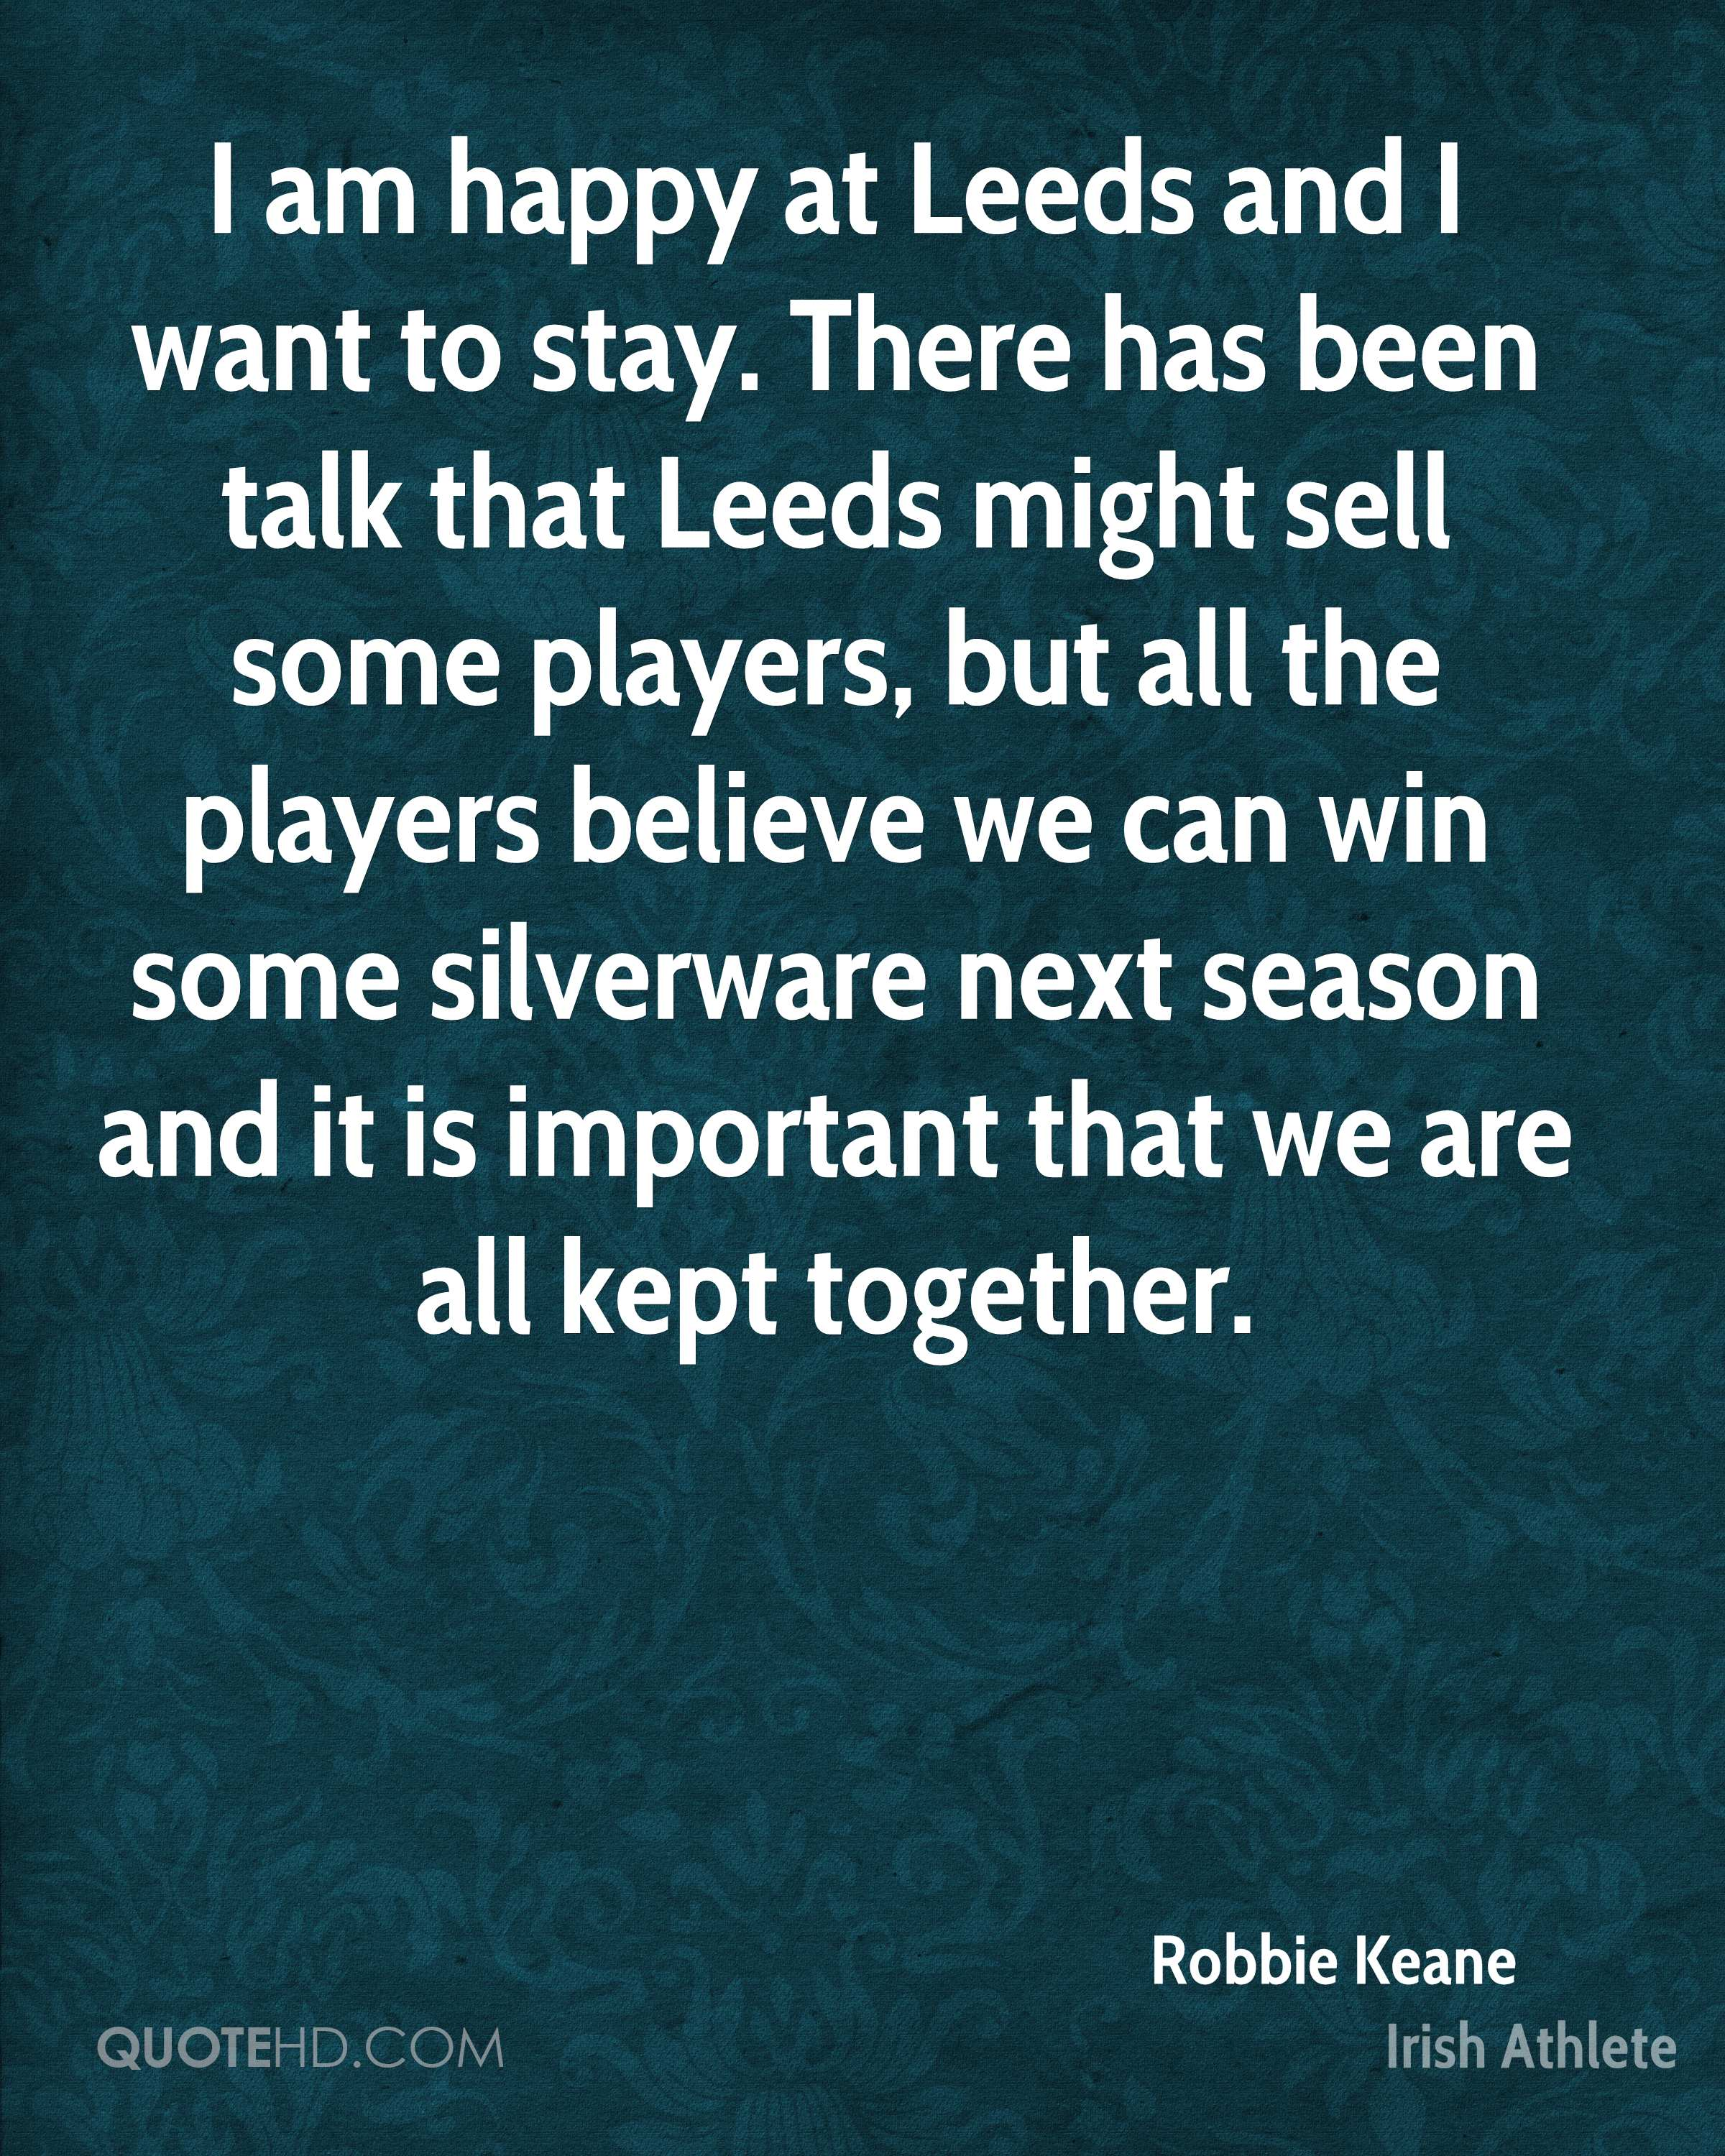 I am happy at Leeds and I want to stay. There has been talk that Leeds might sell some players, but all the players believe we can win some silverware next season and it is important that we are all kept together.